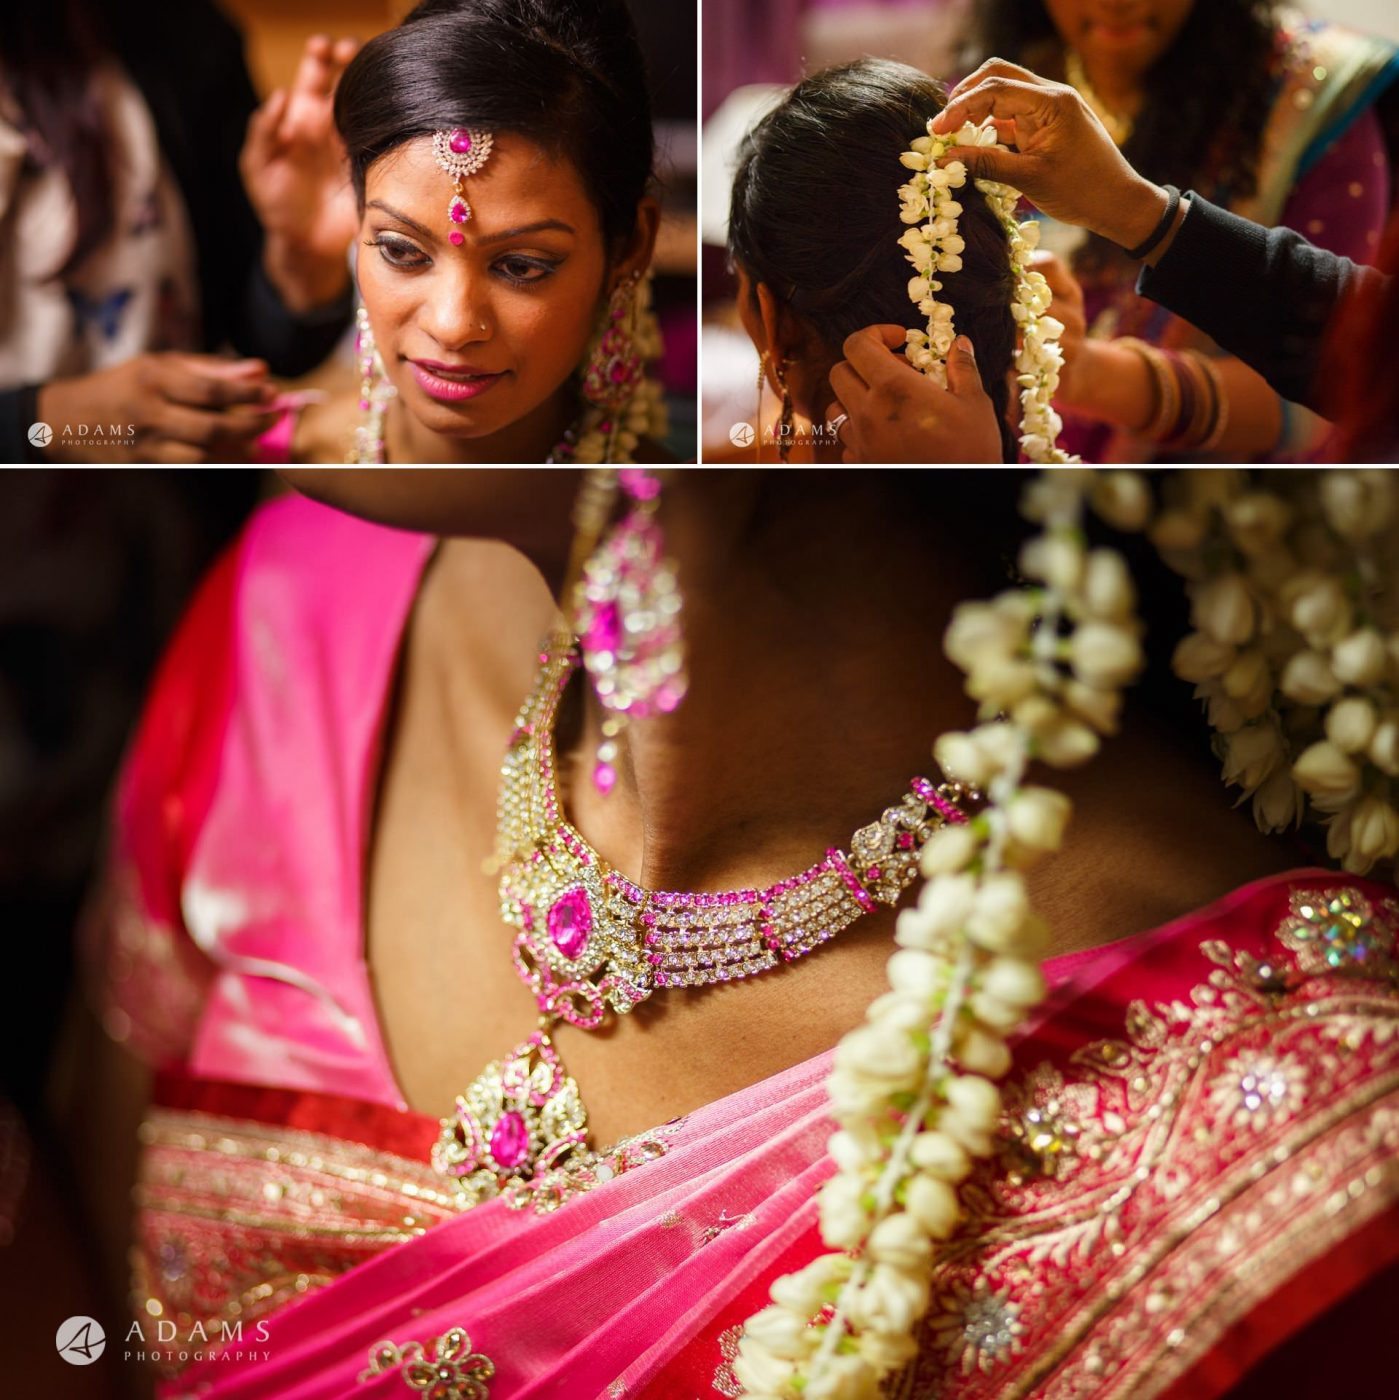 hatfield hindu singles Sweet asian singles in hatfield use dating services like benaughtycom to meet proper matches wanna meet an asian partner join them here.